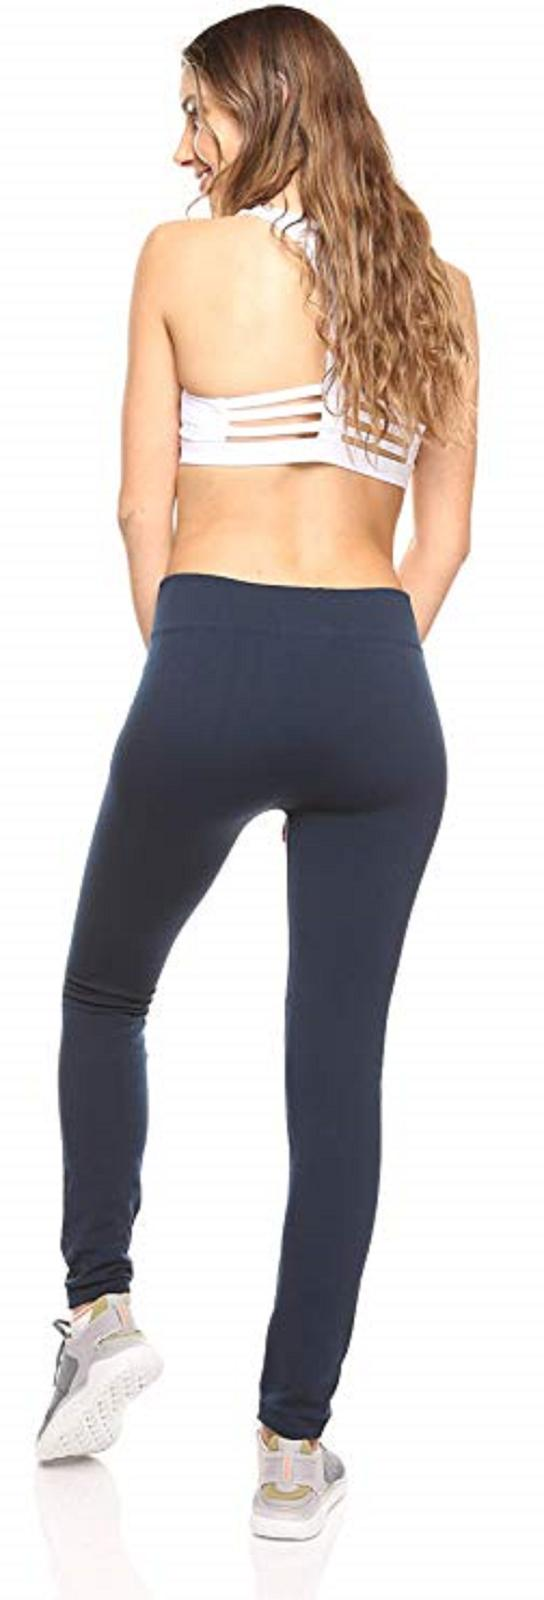 6 Lined Leggings Winter, Everyday Use